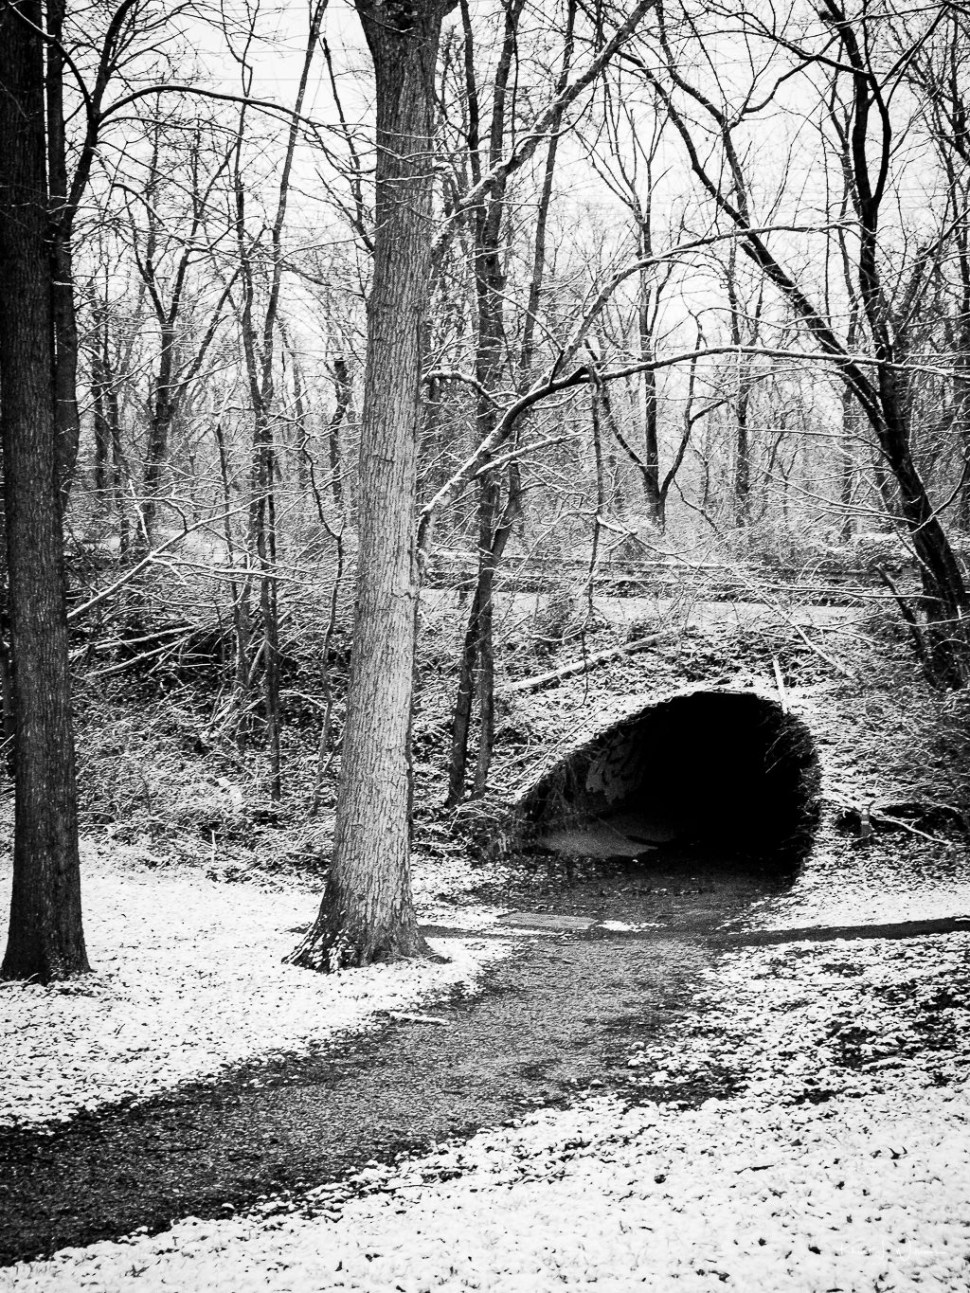 Pathway to a tunnel with snow all around